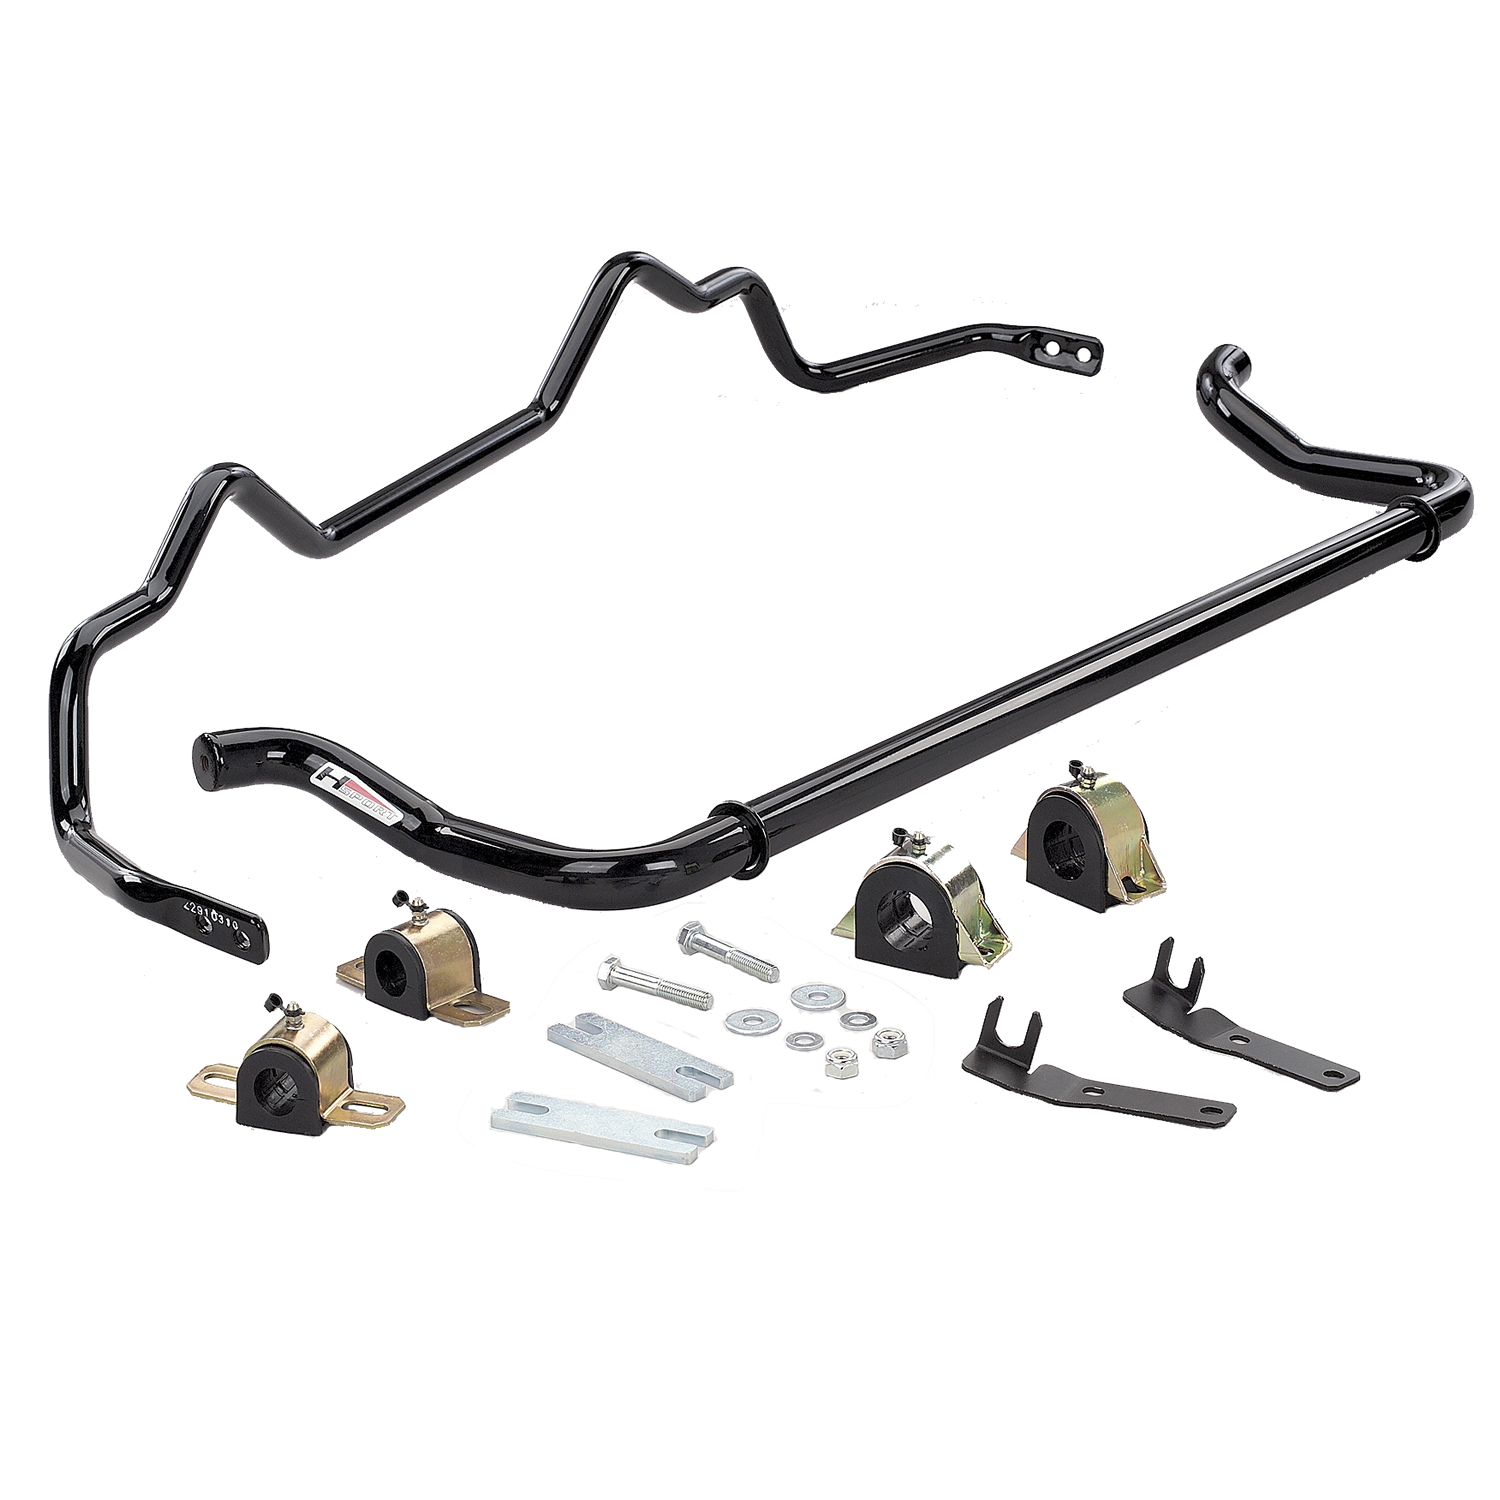 2003-2004 Audi RS6 Sport Sway Bar Set from Hotchkis Sport Suspension